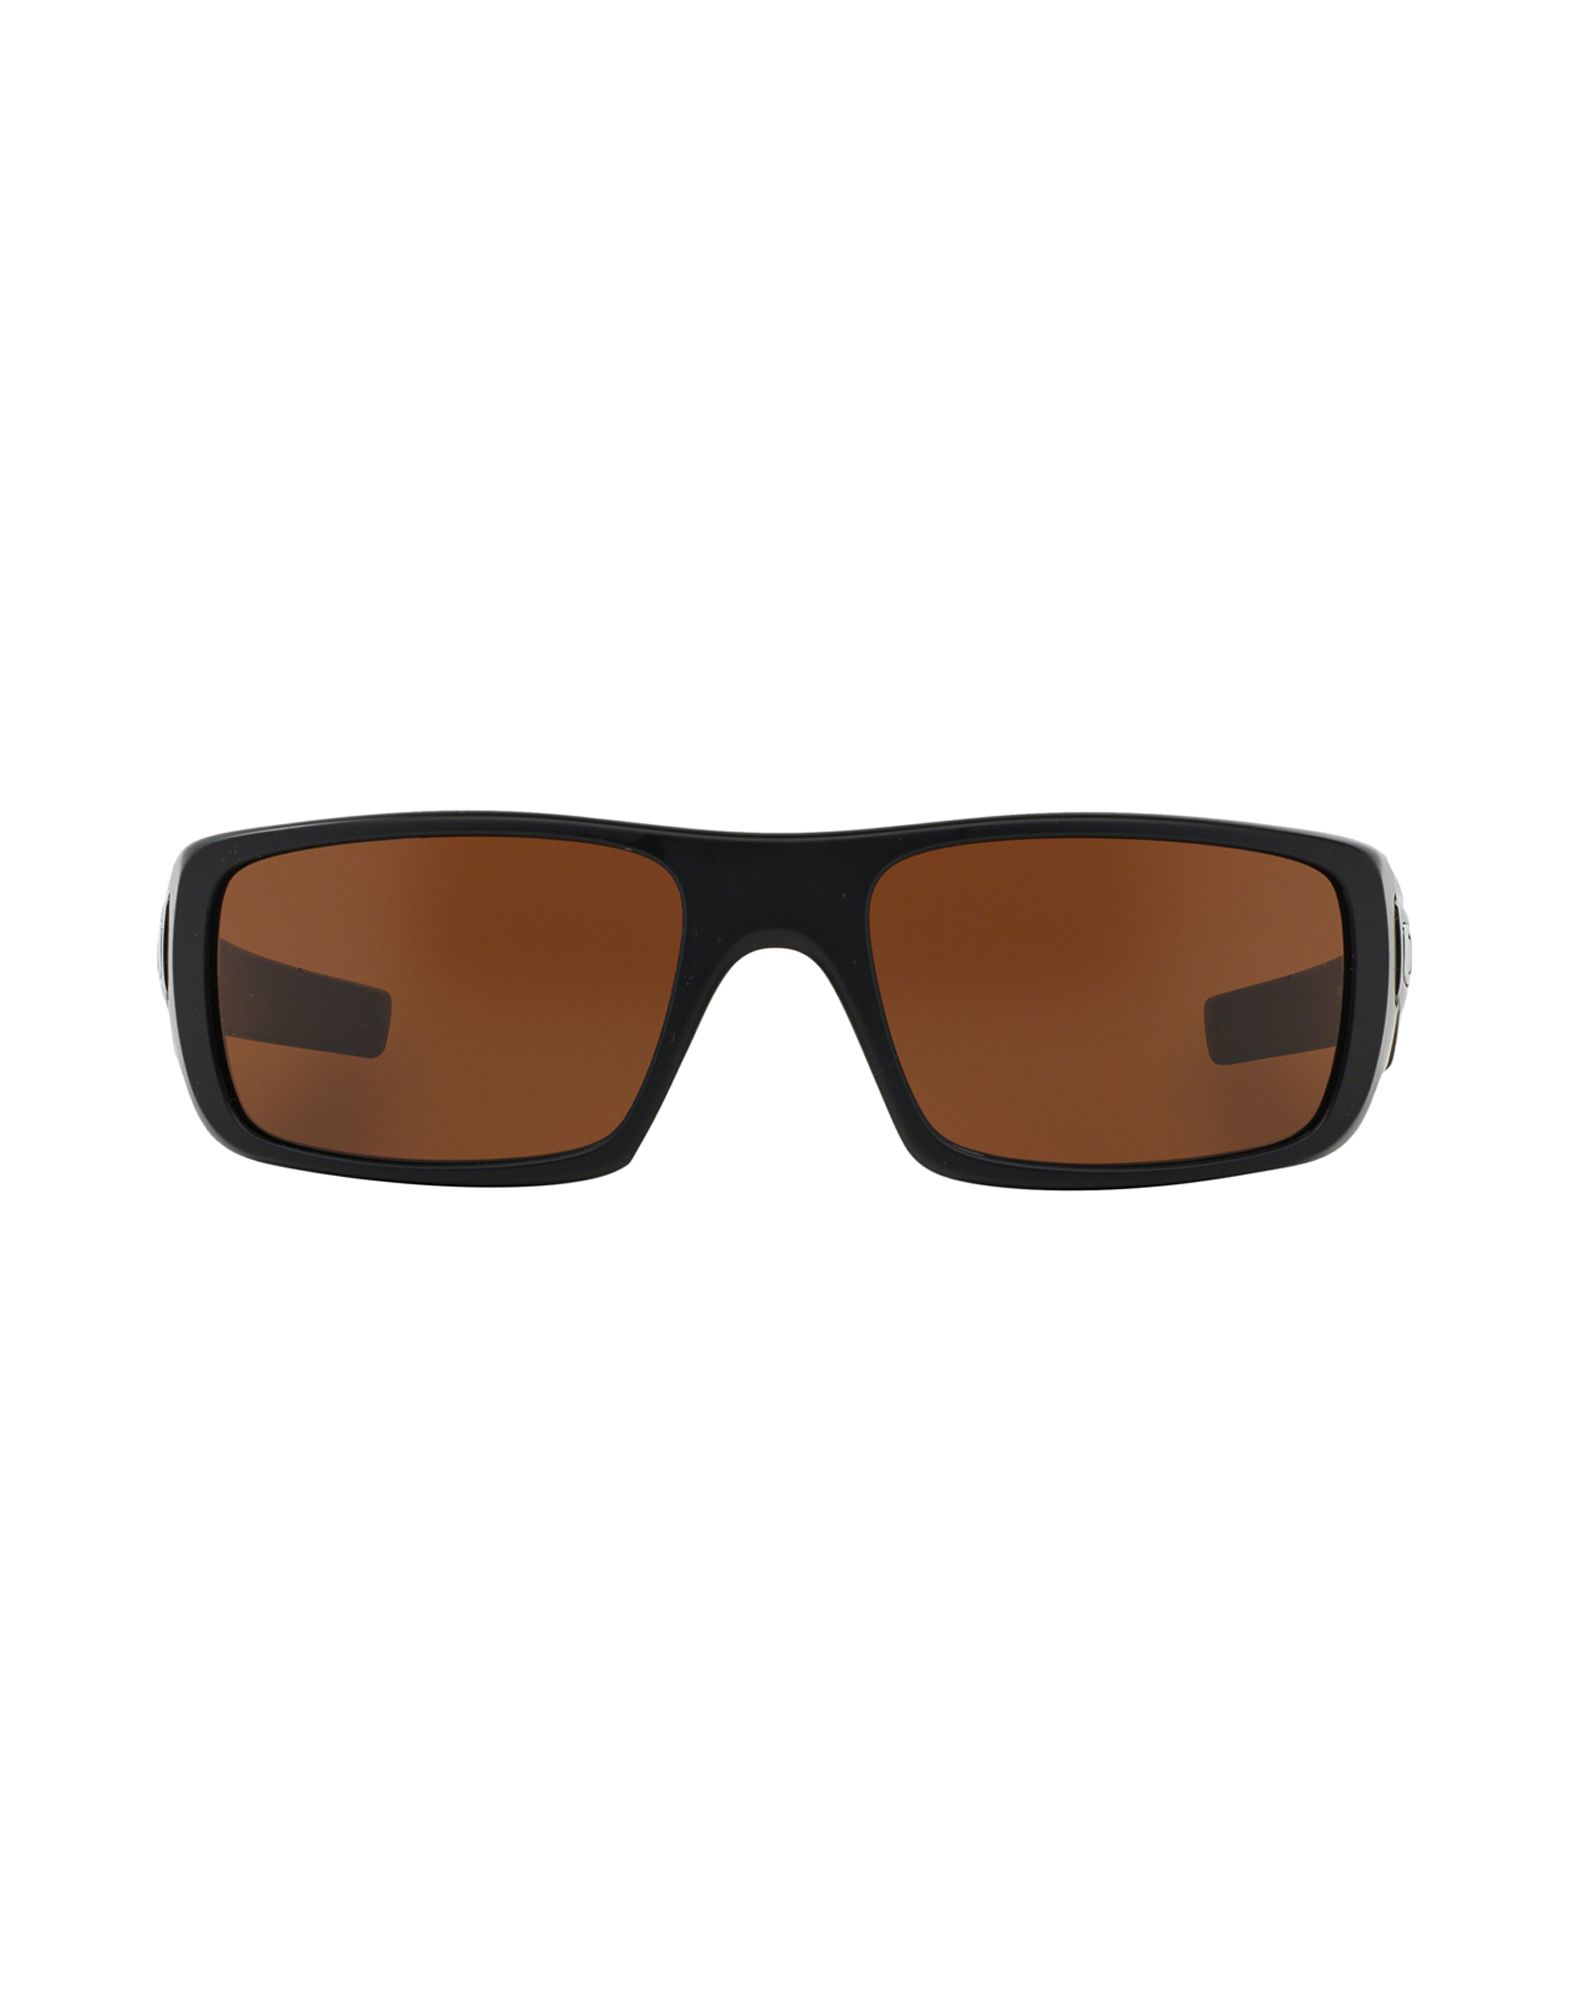 31797281bb1 Black Oakley Sunglasses For Men « Heritage Malta